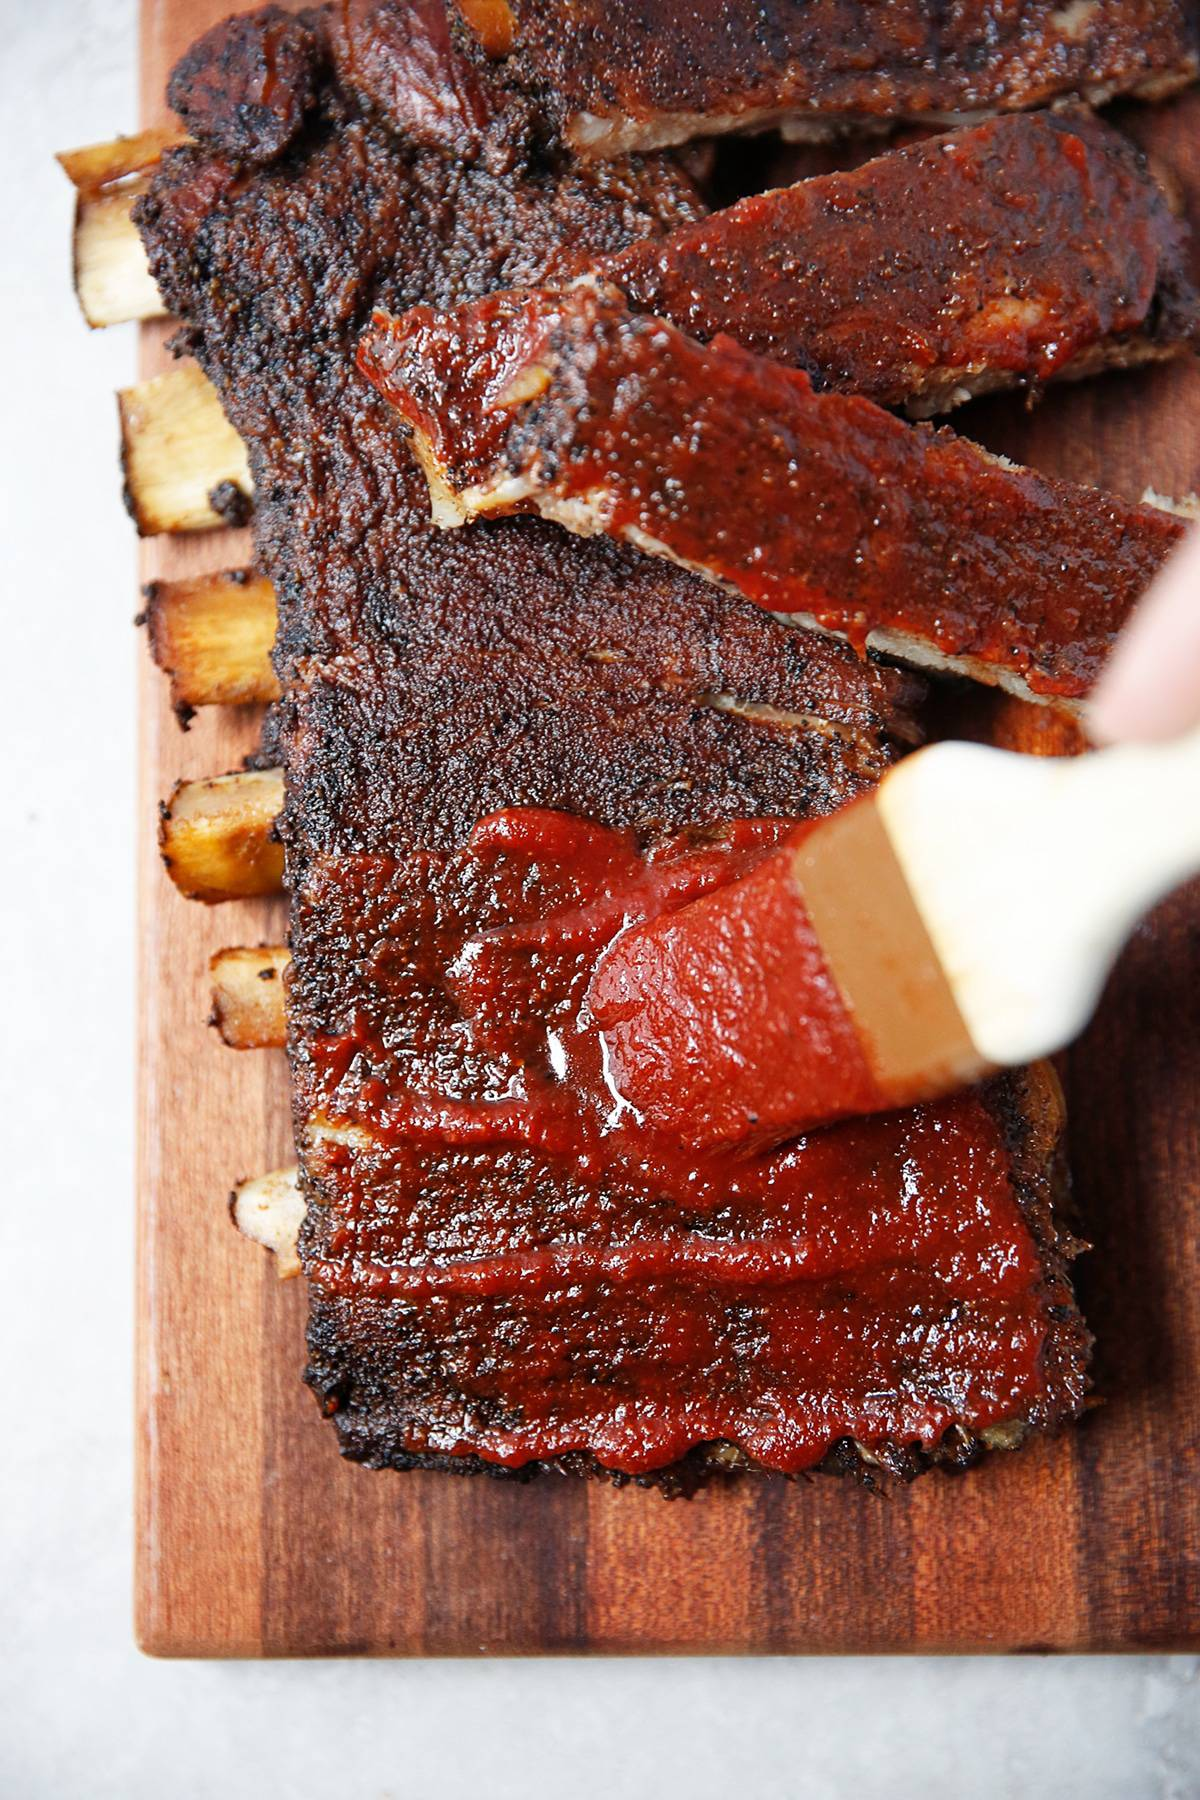 Coffee BBQ ribs